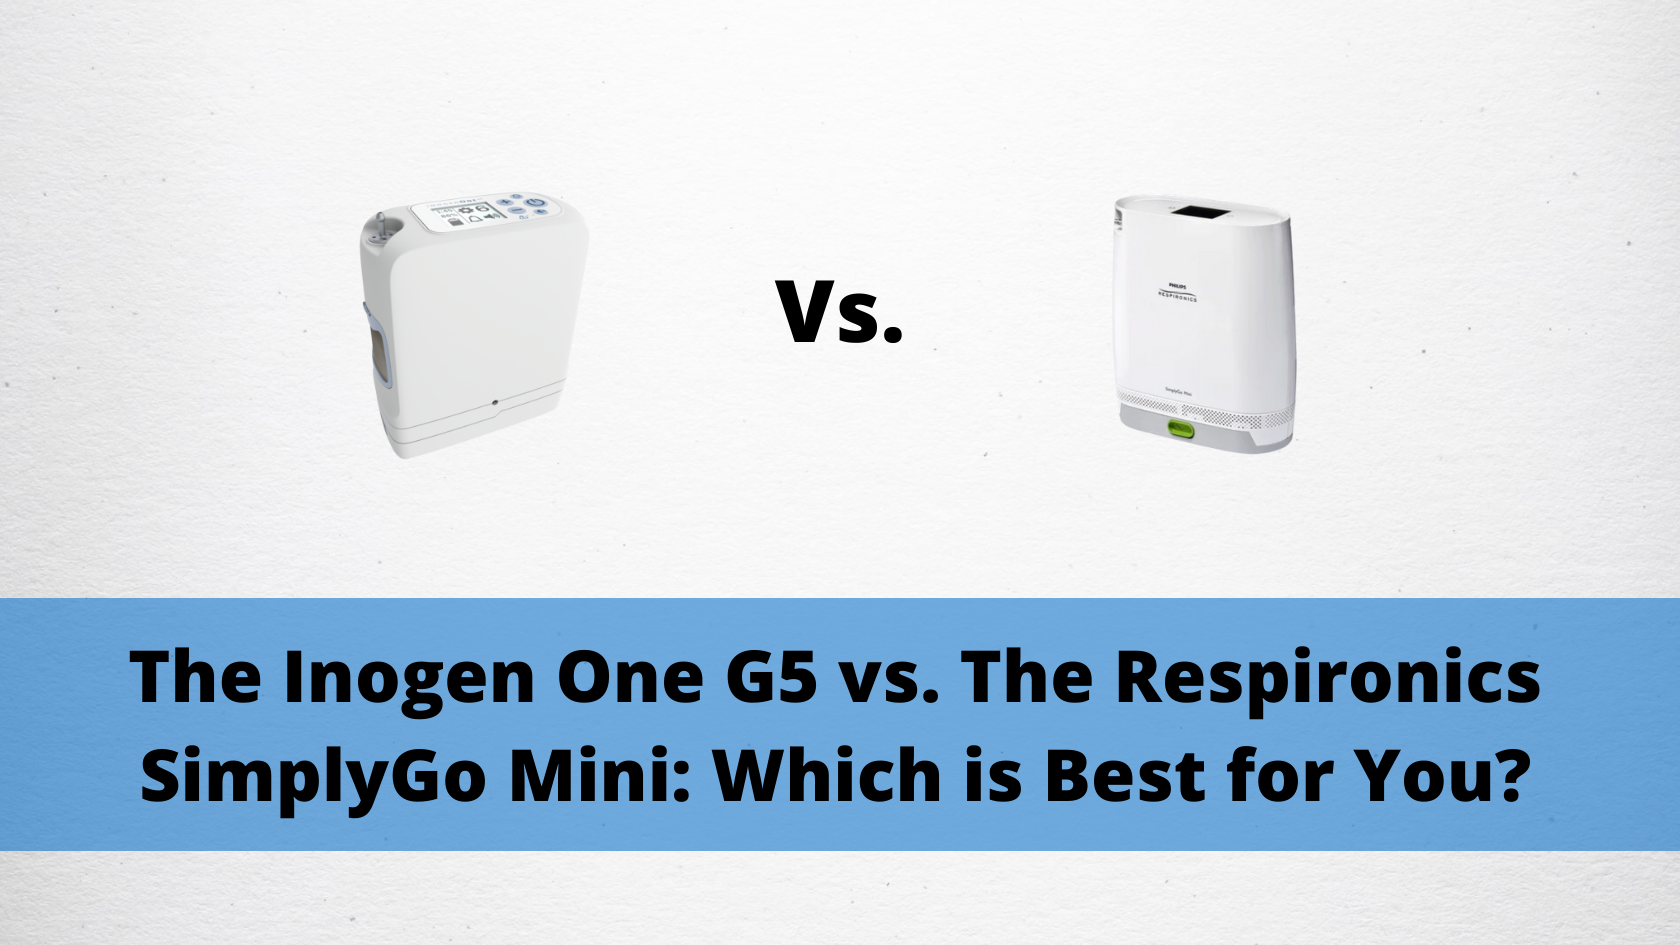 The Inogen One G5 vs. The Respironics SimplyGo Mini: Which is Best for You_